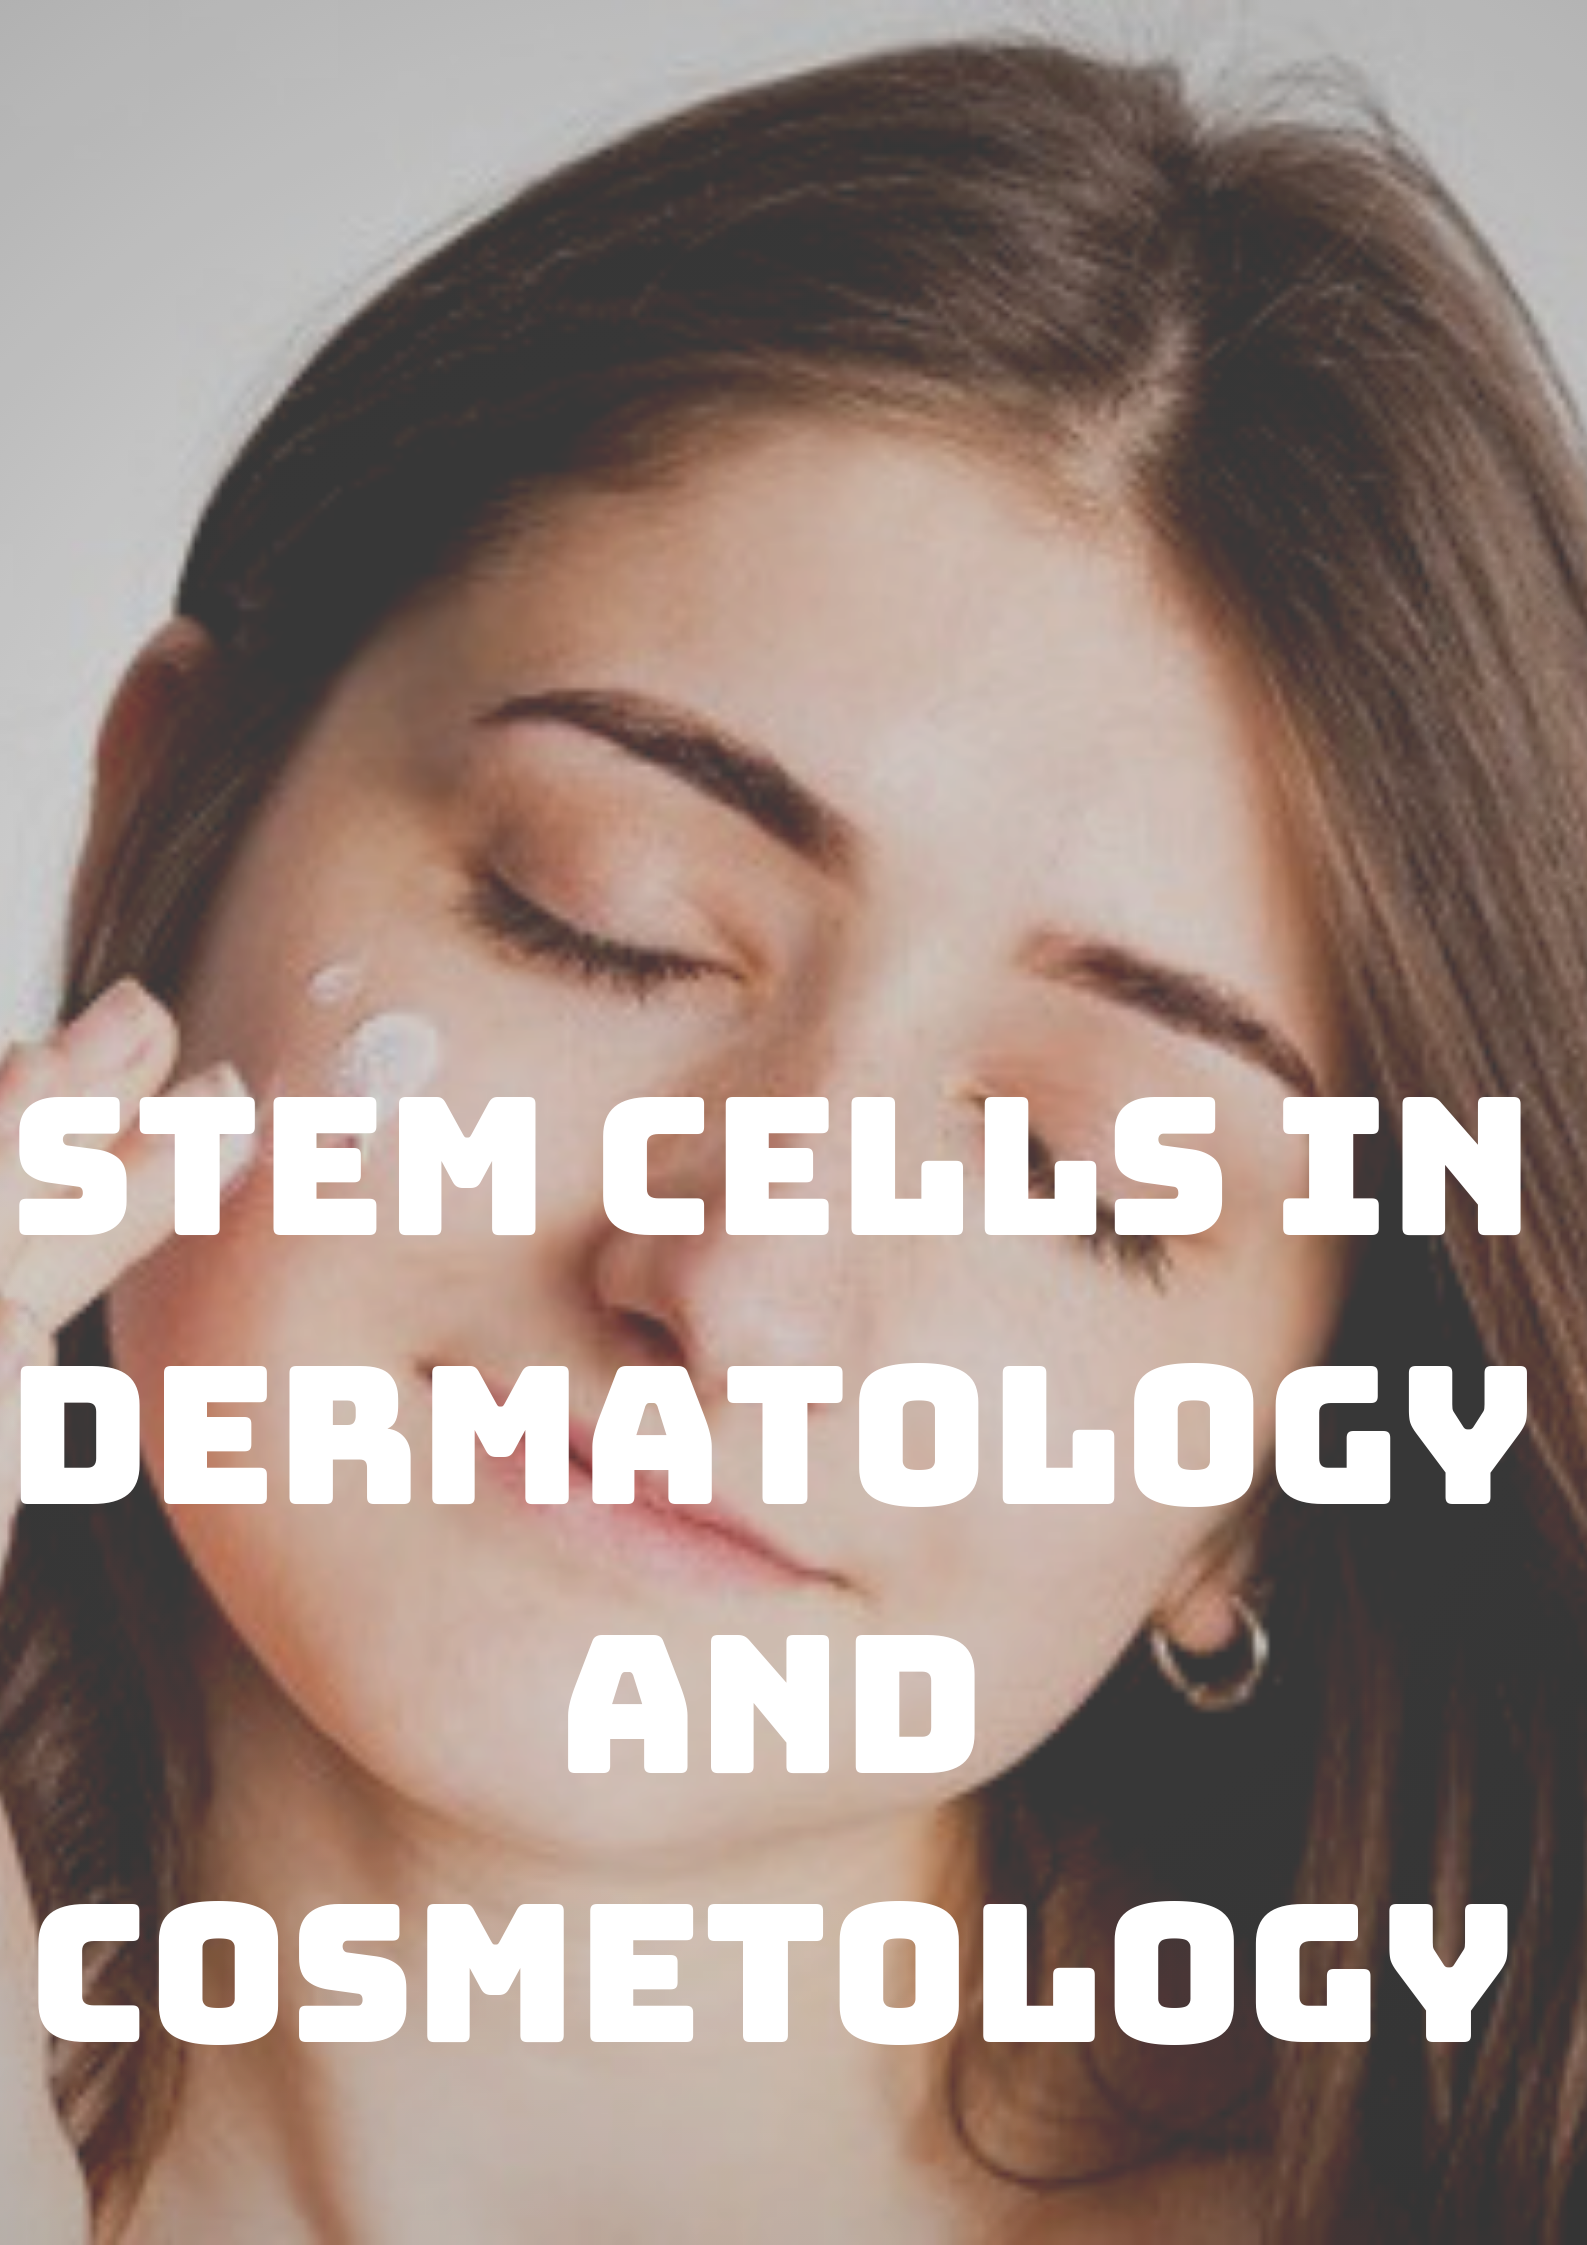 Stem Cells in Dermatology and Cosmetology Photo